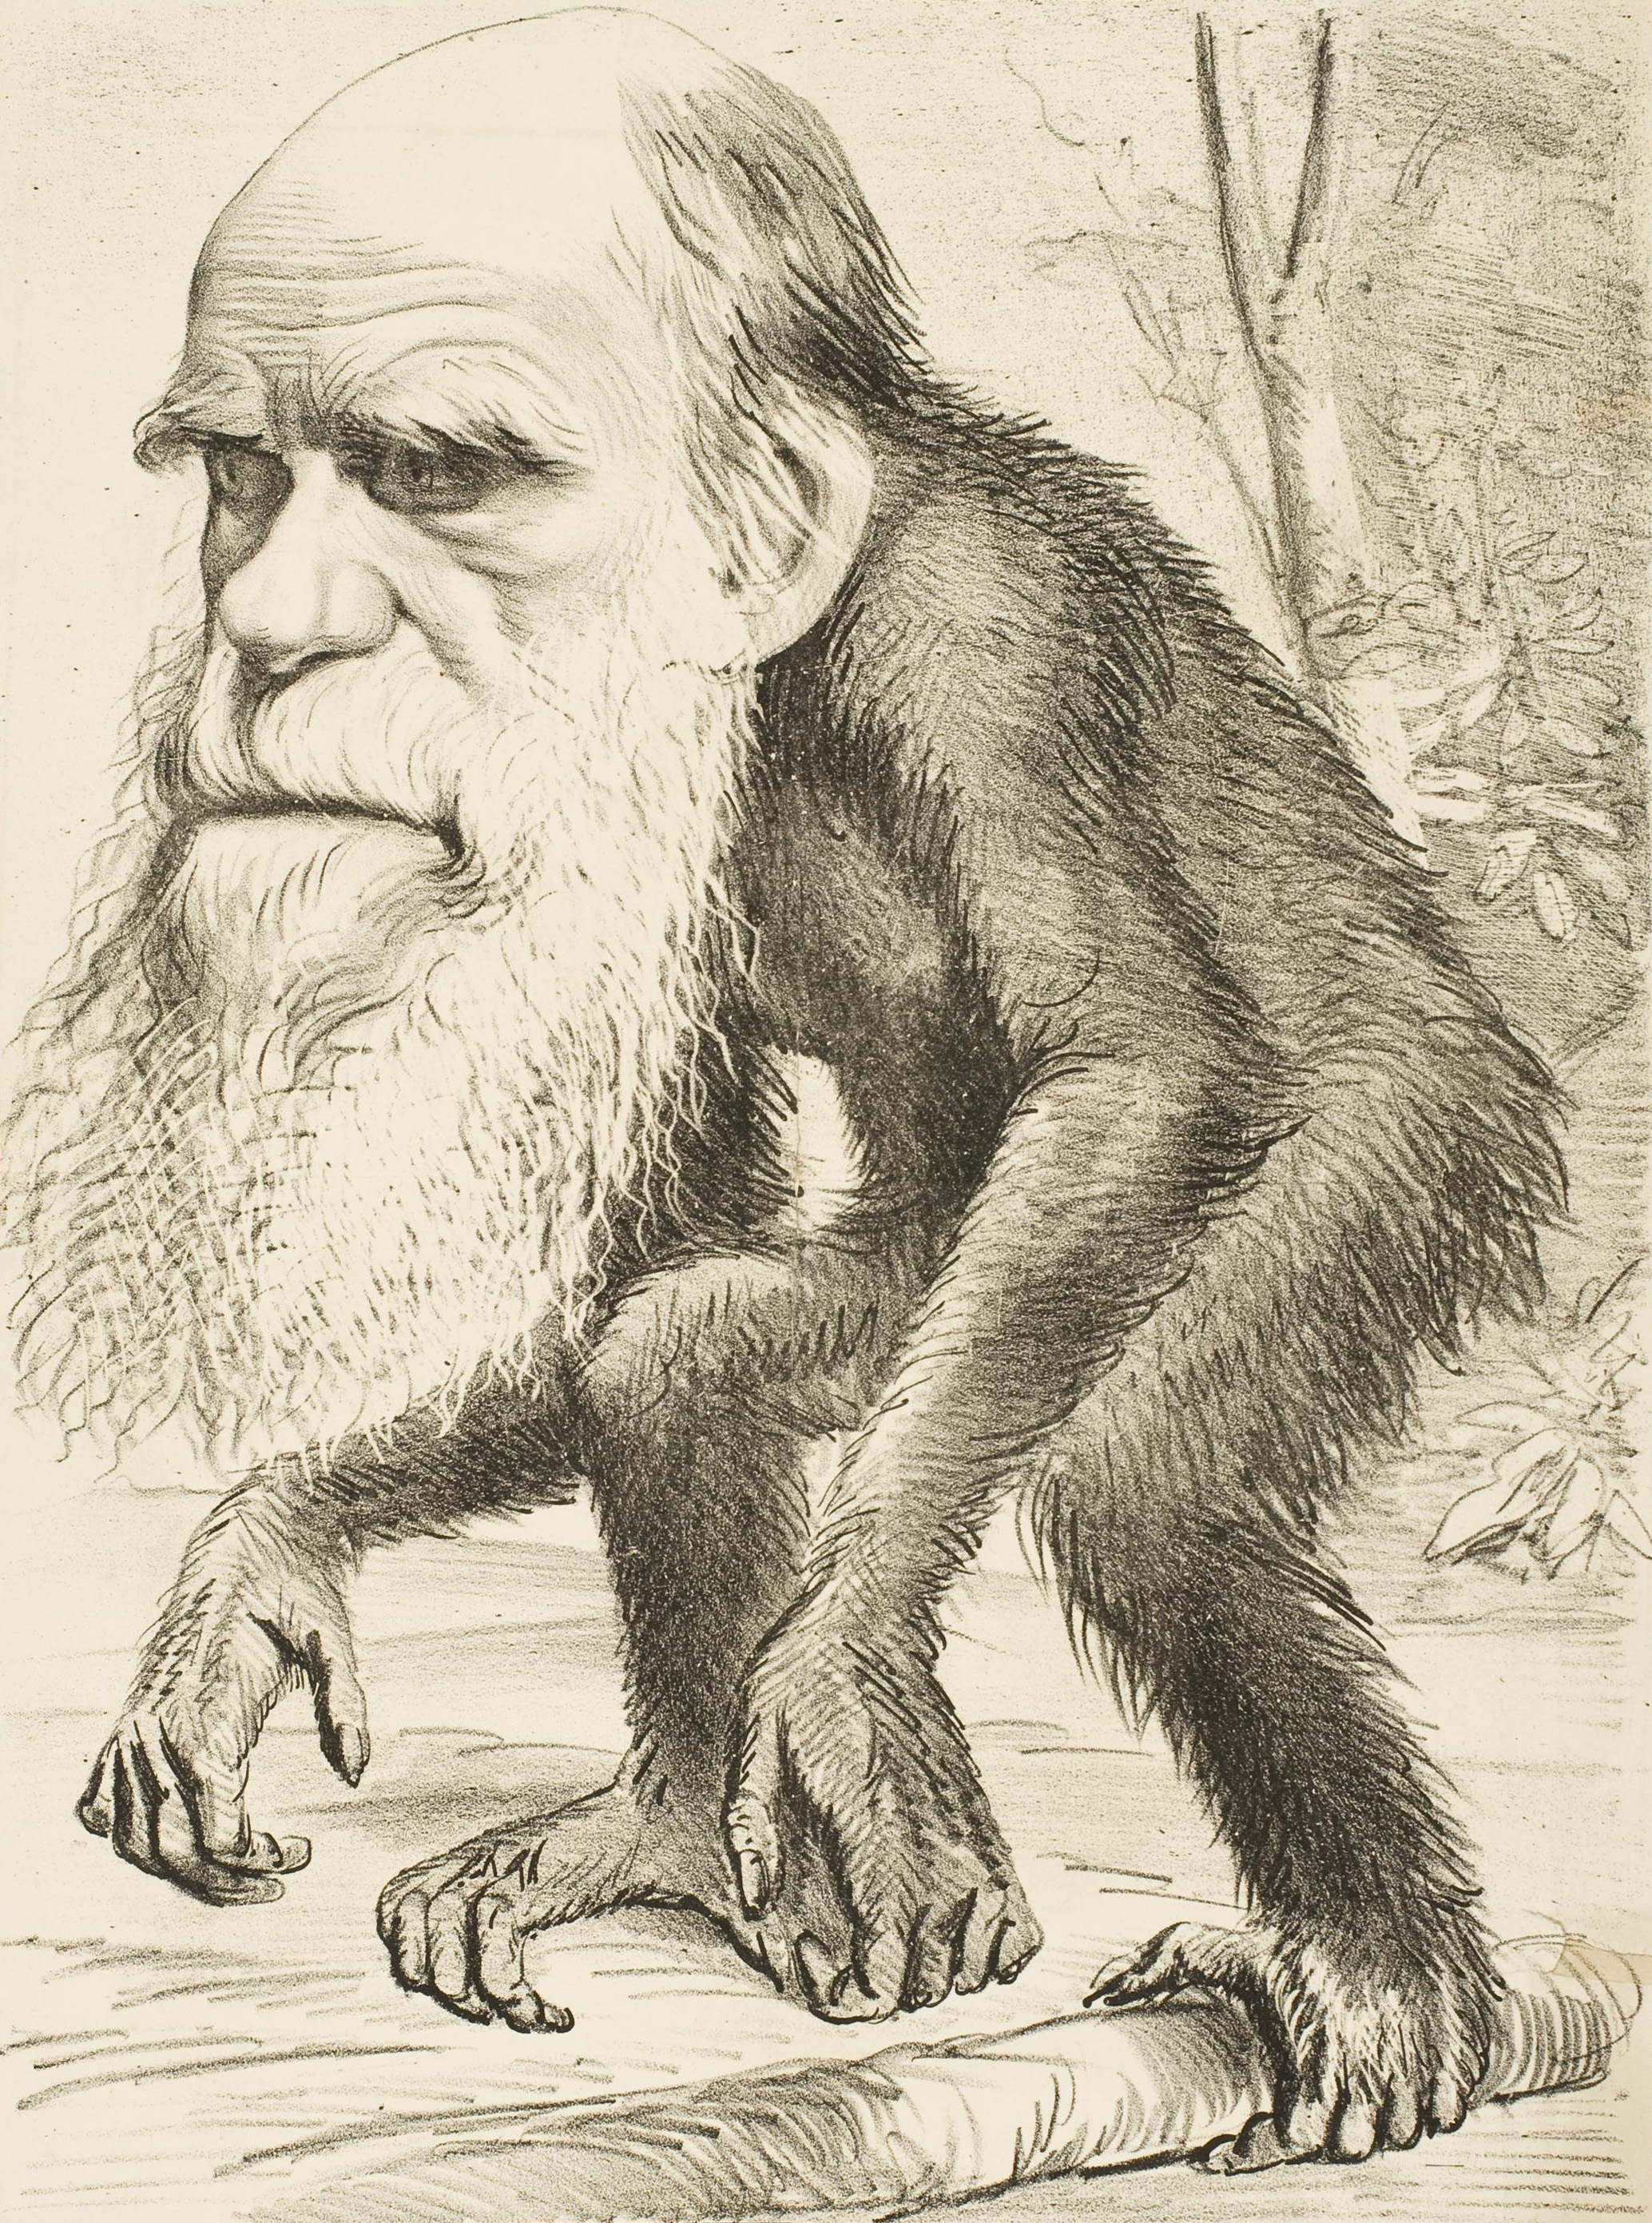 Caractiture of Charles Darwin 1871 (source: wikipedia)